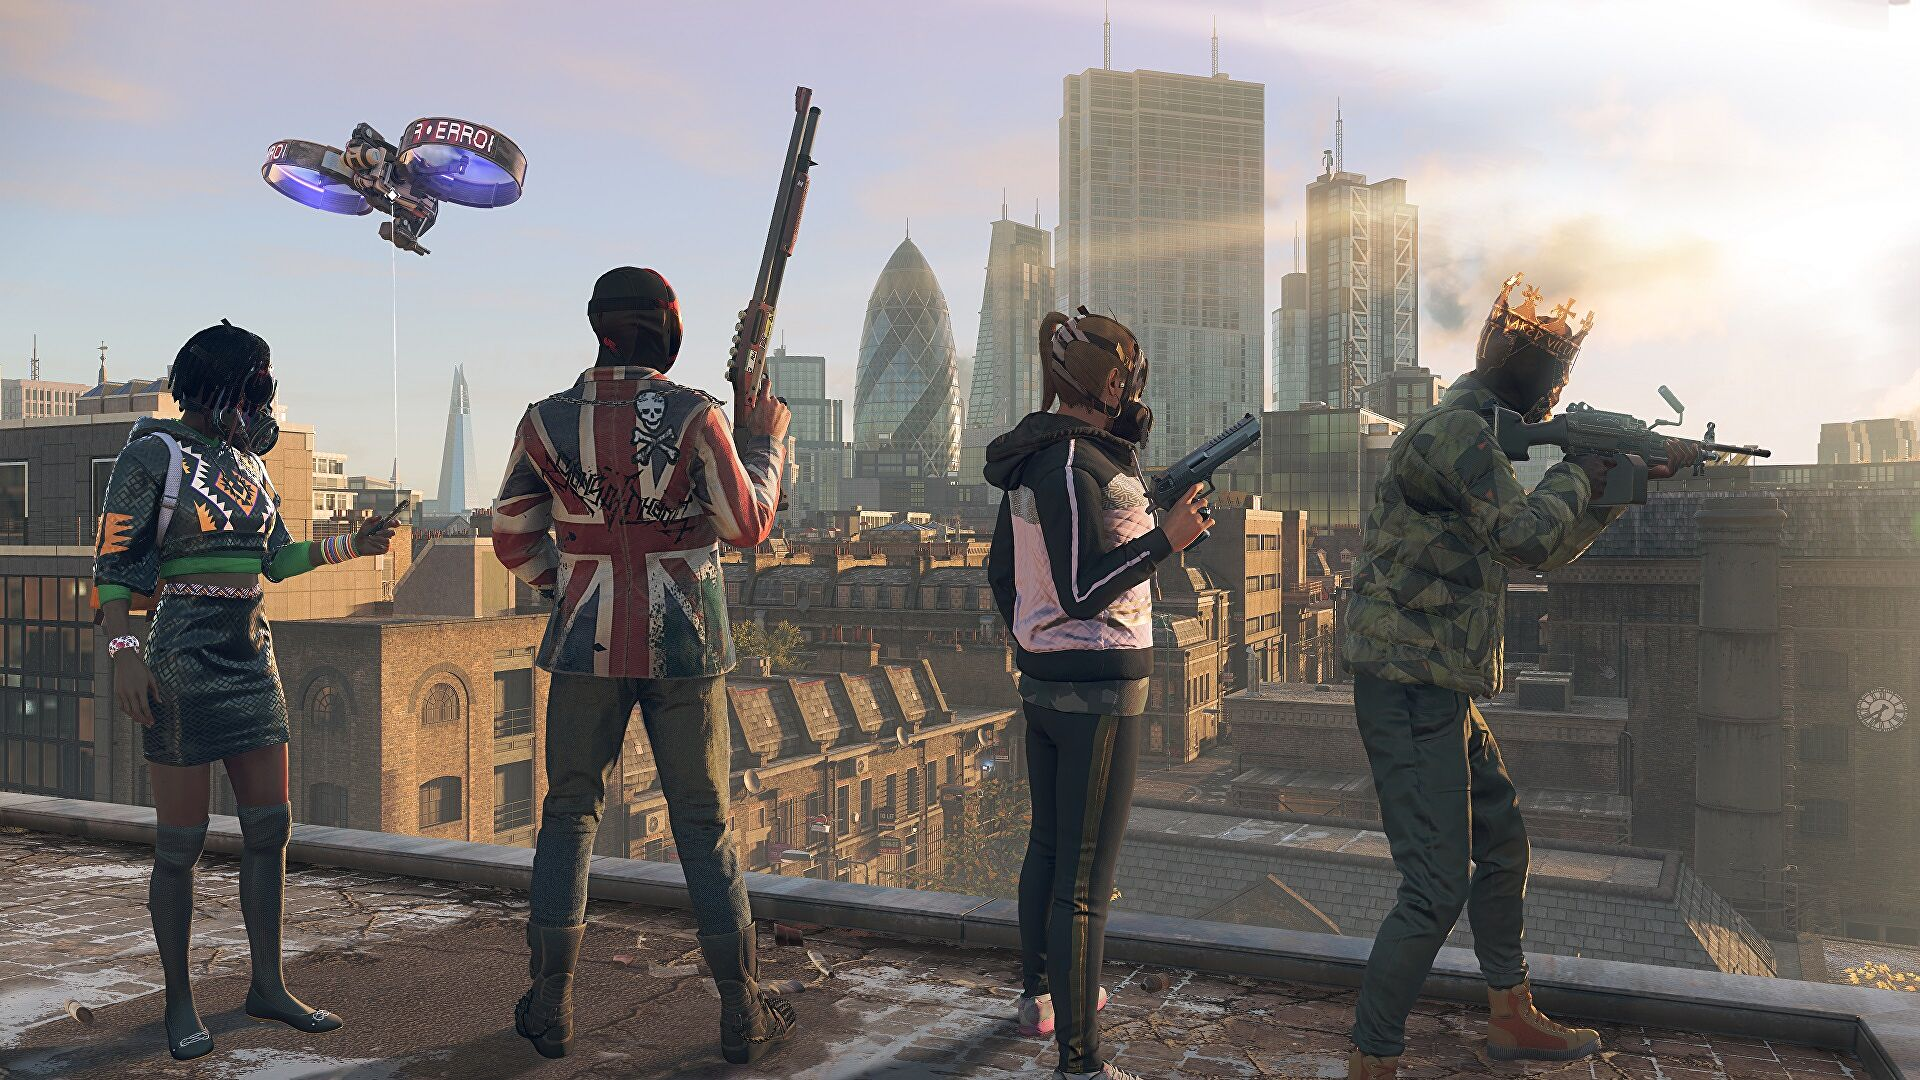 Watch Dogs Legion's online mode launches in March